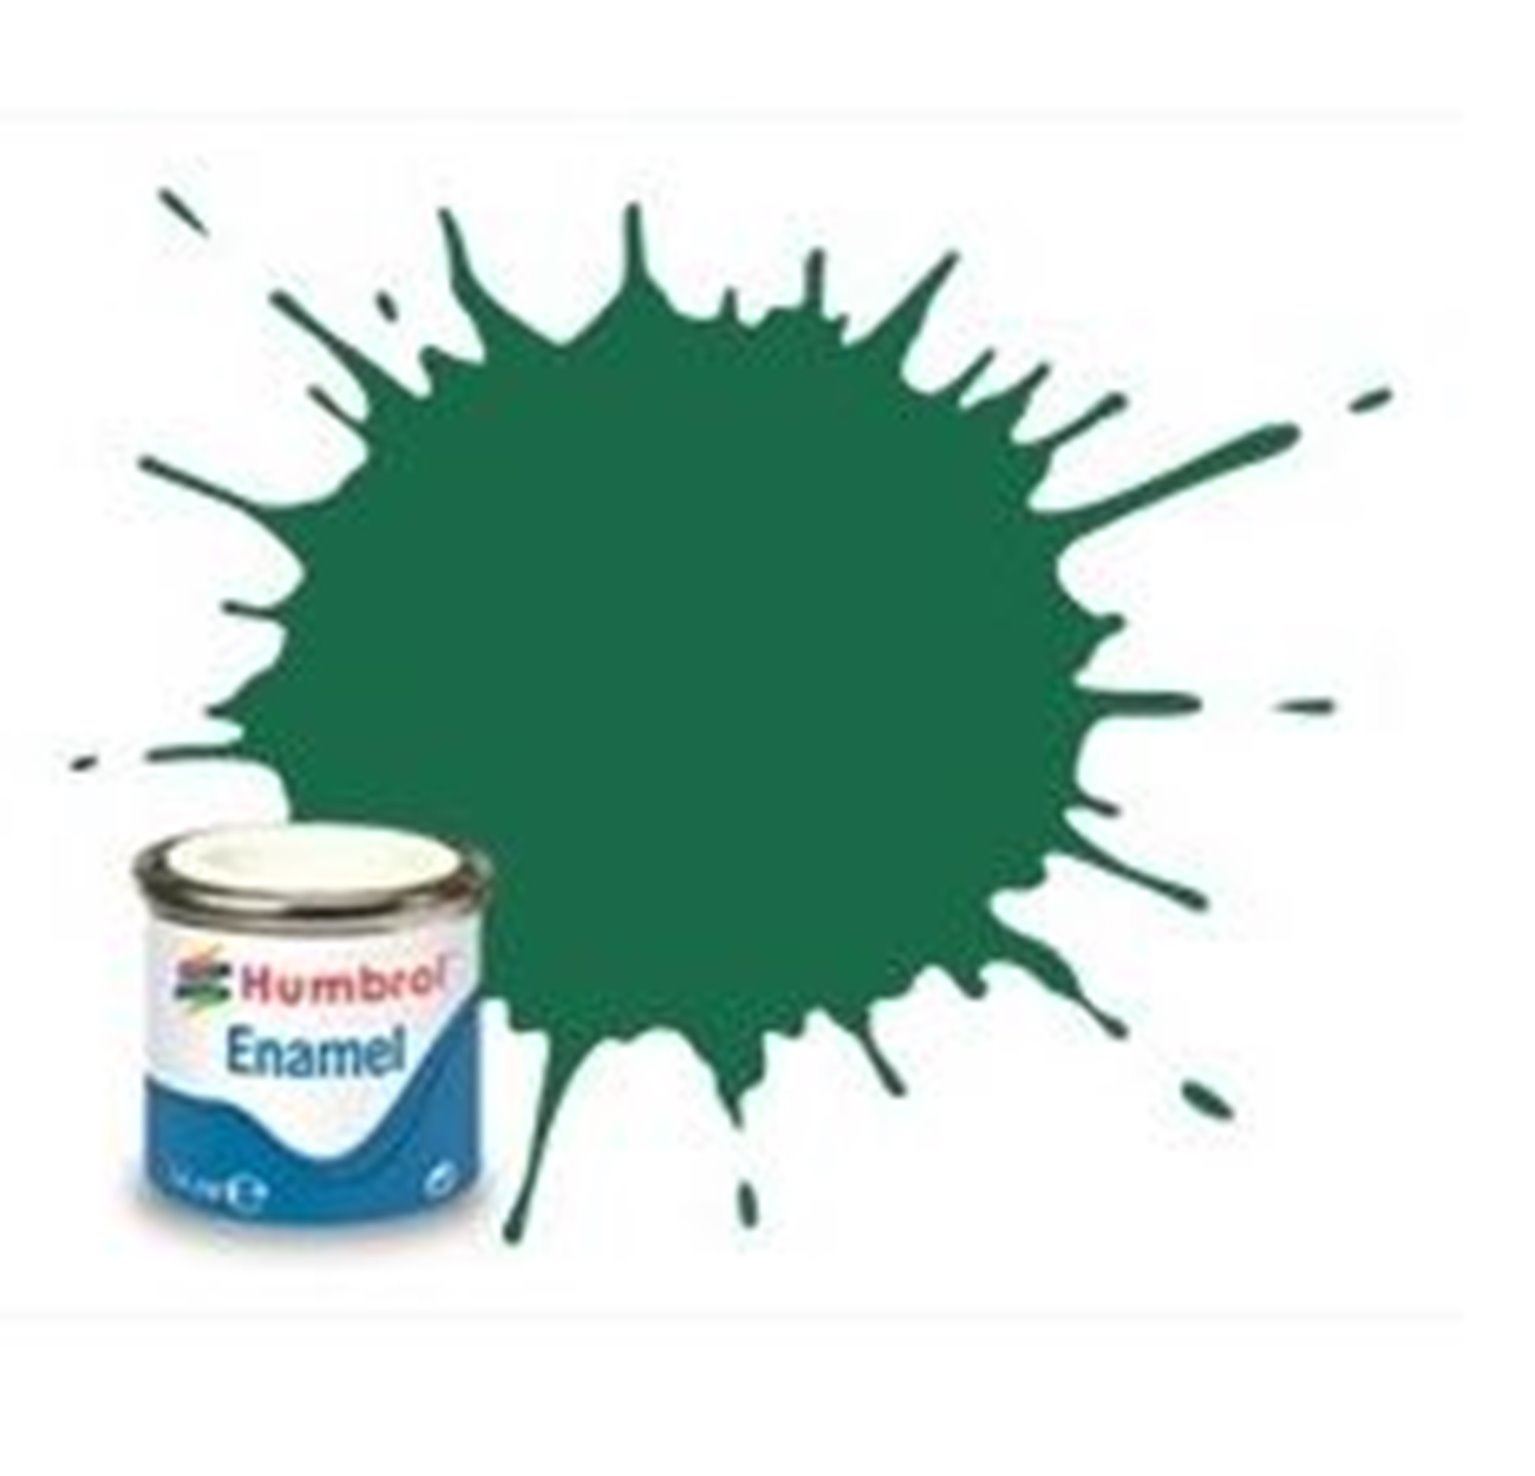 Humbrol 30 Dark Green Matt - 14ml Enamel Paint